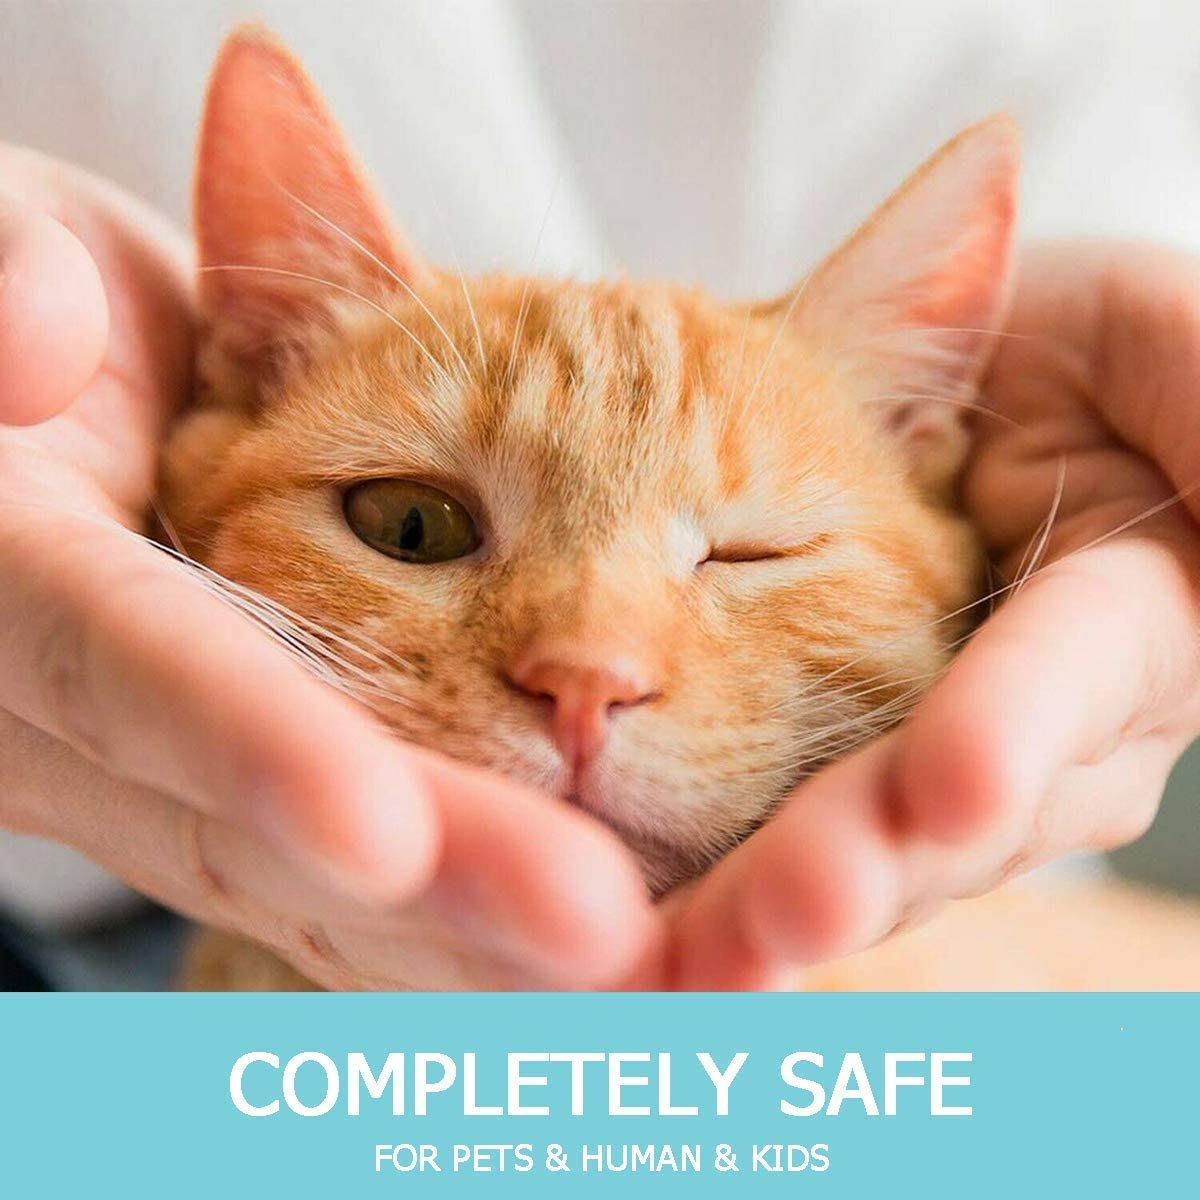 One Size Fits All 8 Month Flea and Tick Treatment and Prevention for Cats Adjustable /& Waterproof Cat Flea and Tick Collar Enhanced with Natural Essential Oils